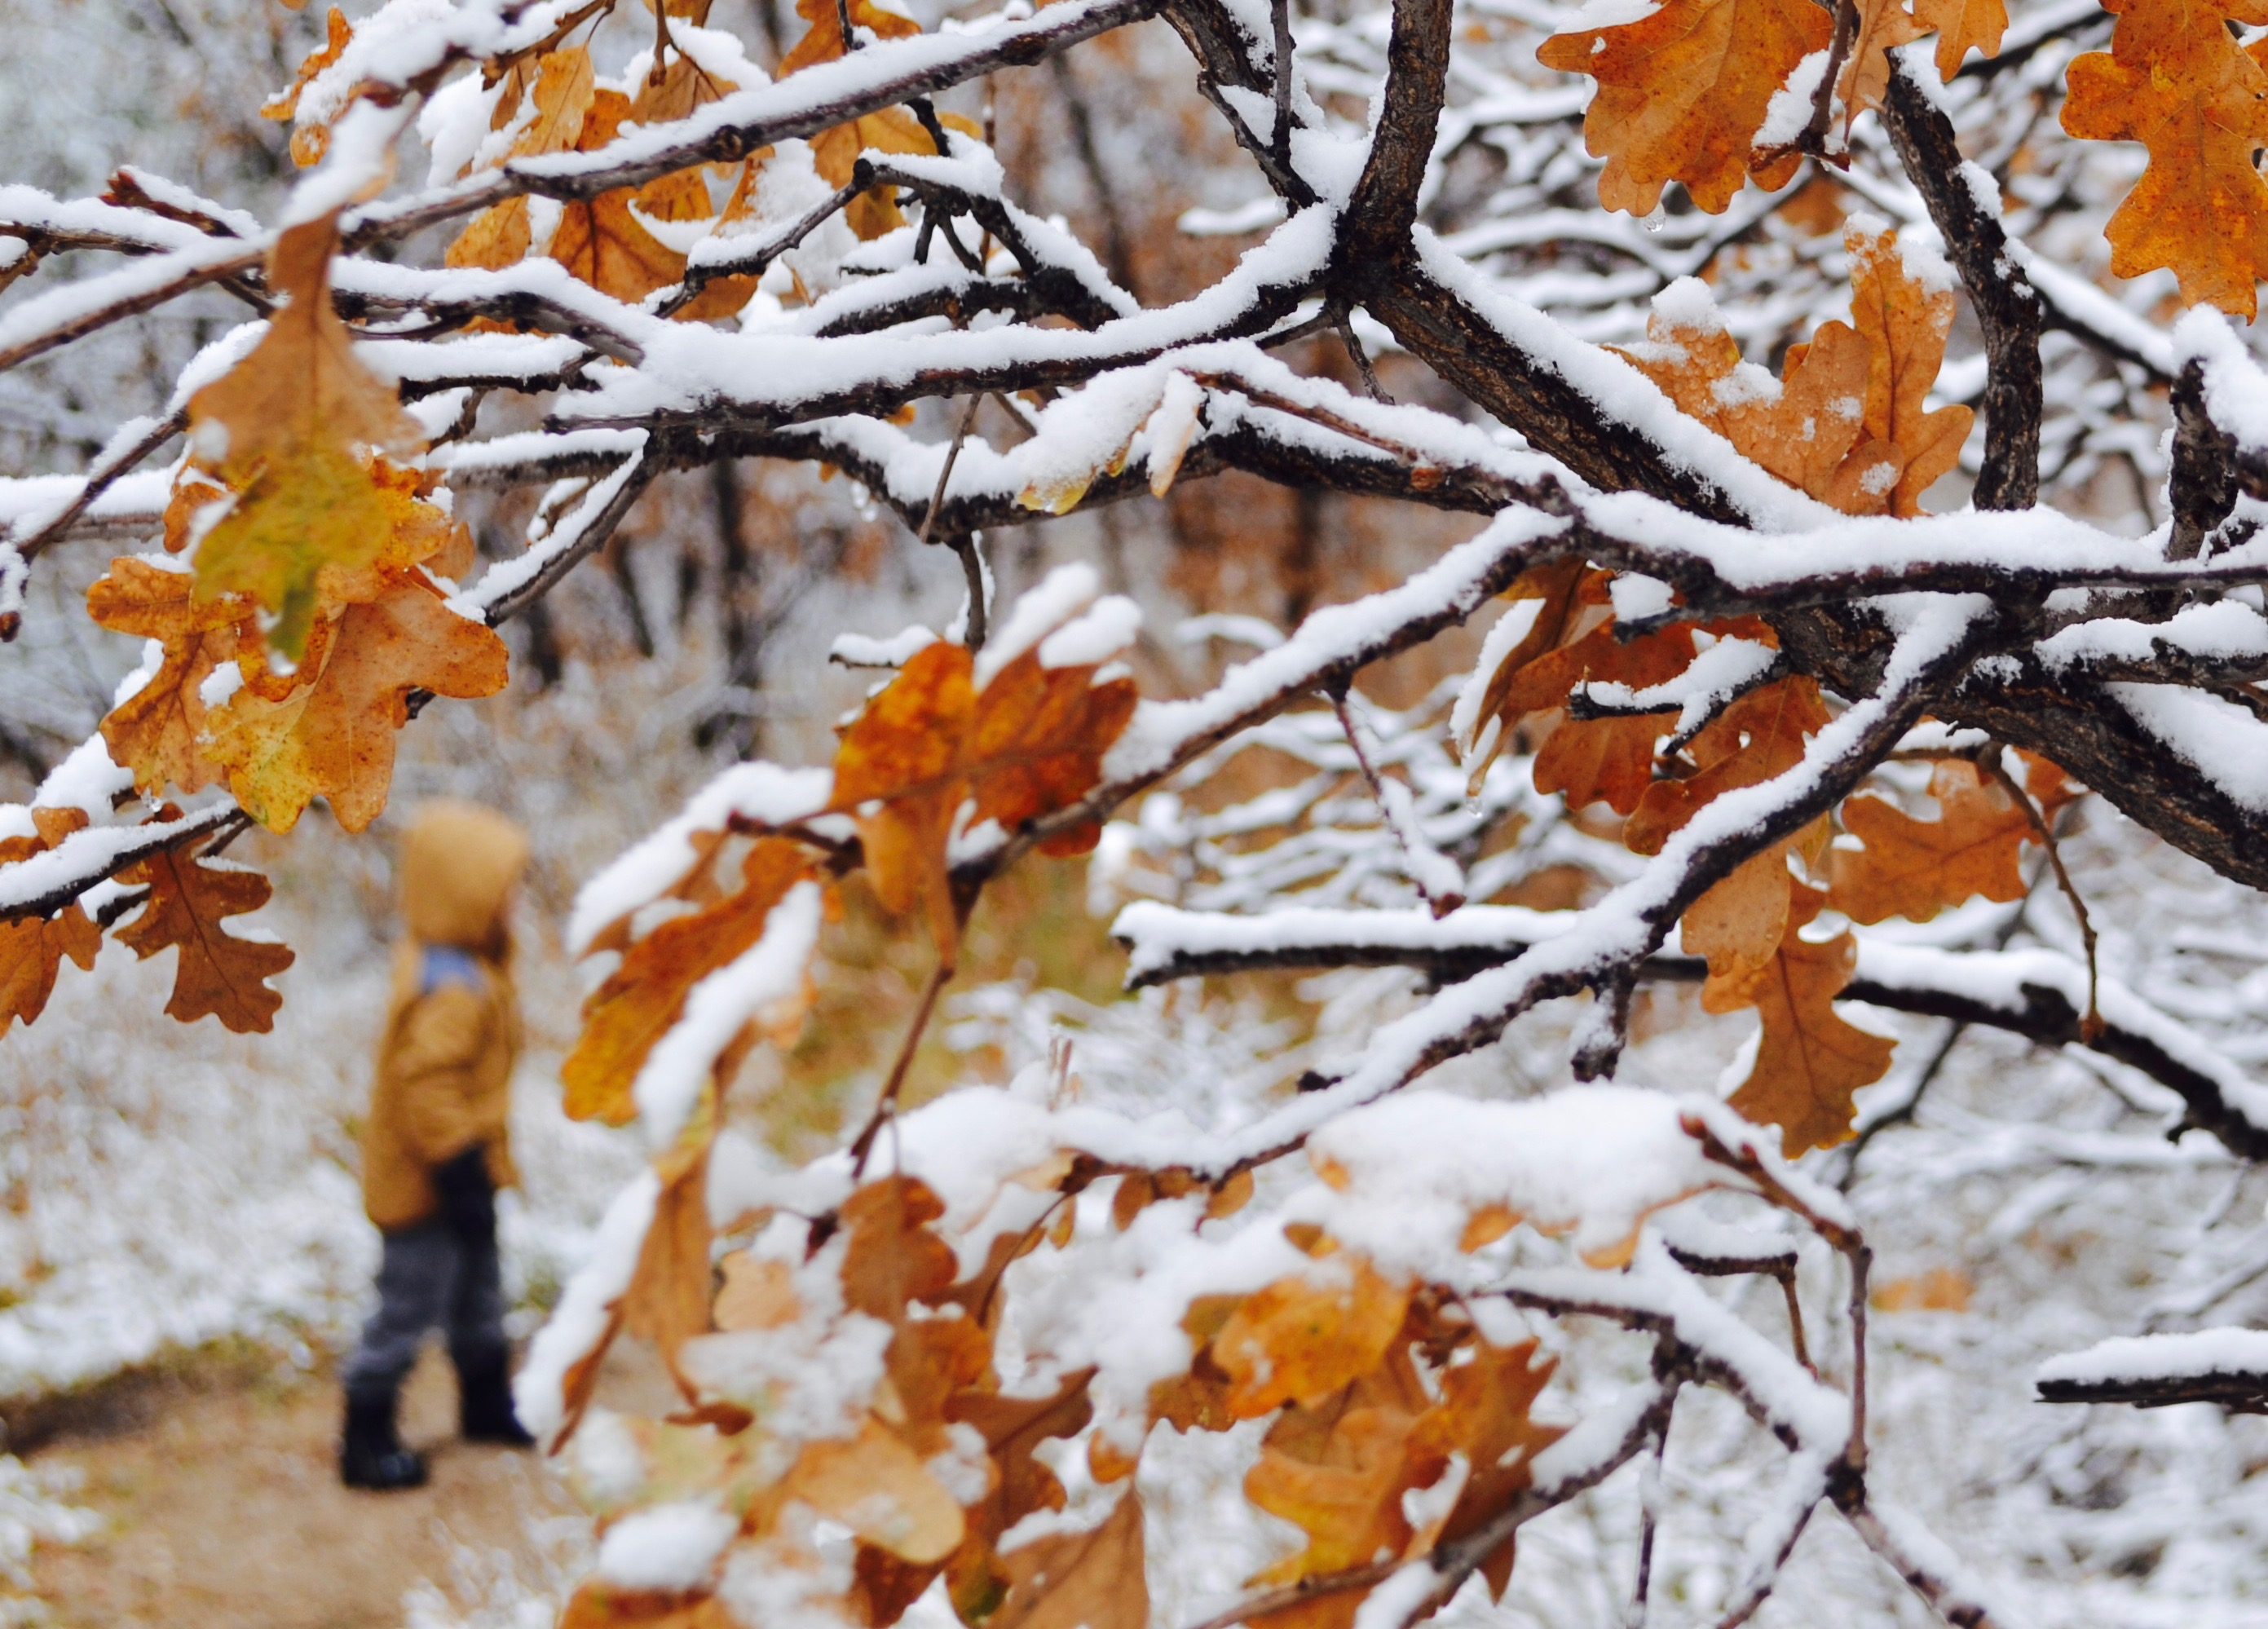 A young boy walks on a trail through snow and trees with fall colored leaves at Thanksgiving time.